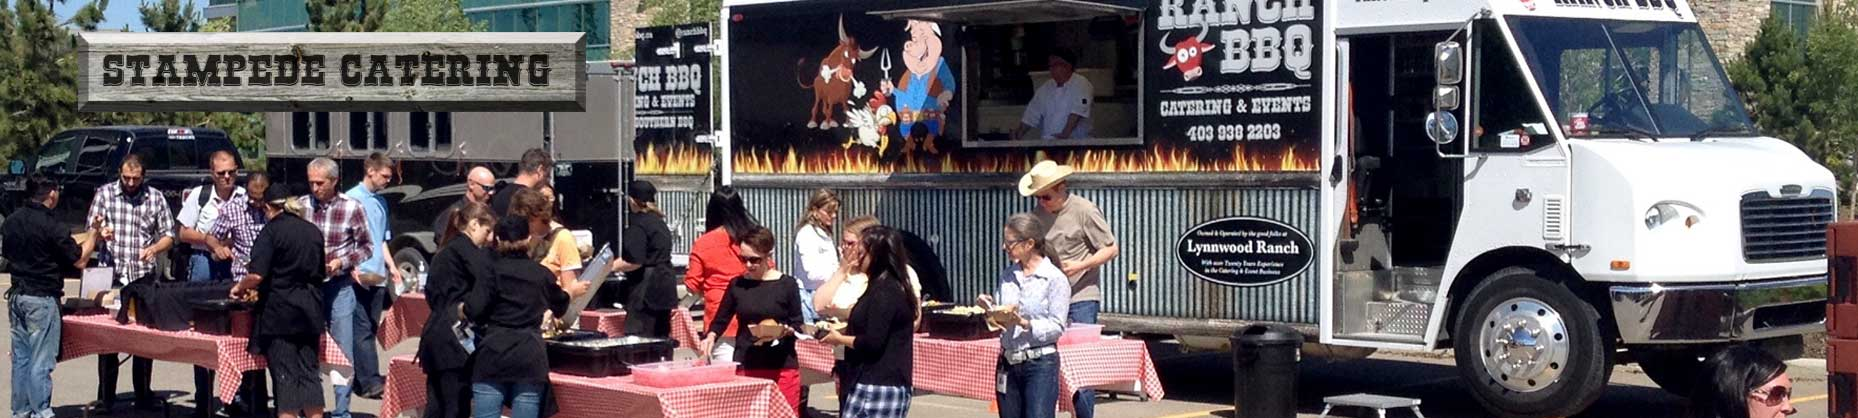 Calgary Catering Food Truck for Company Stampede BBQ party